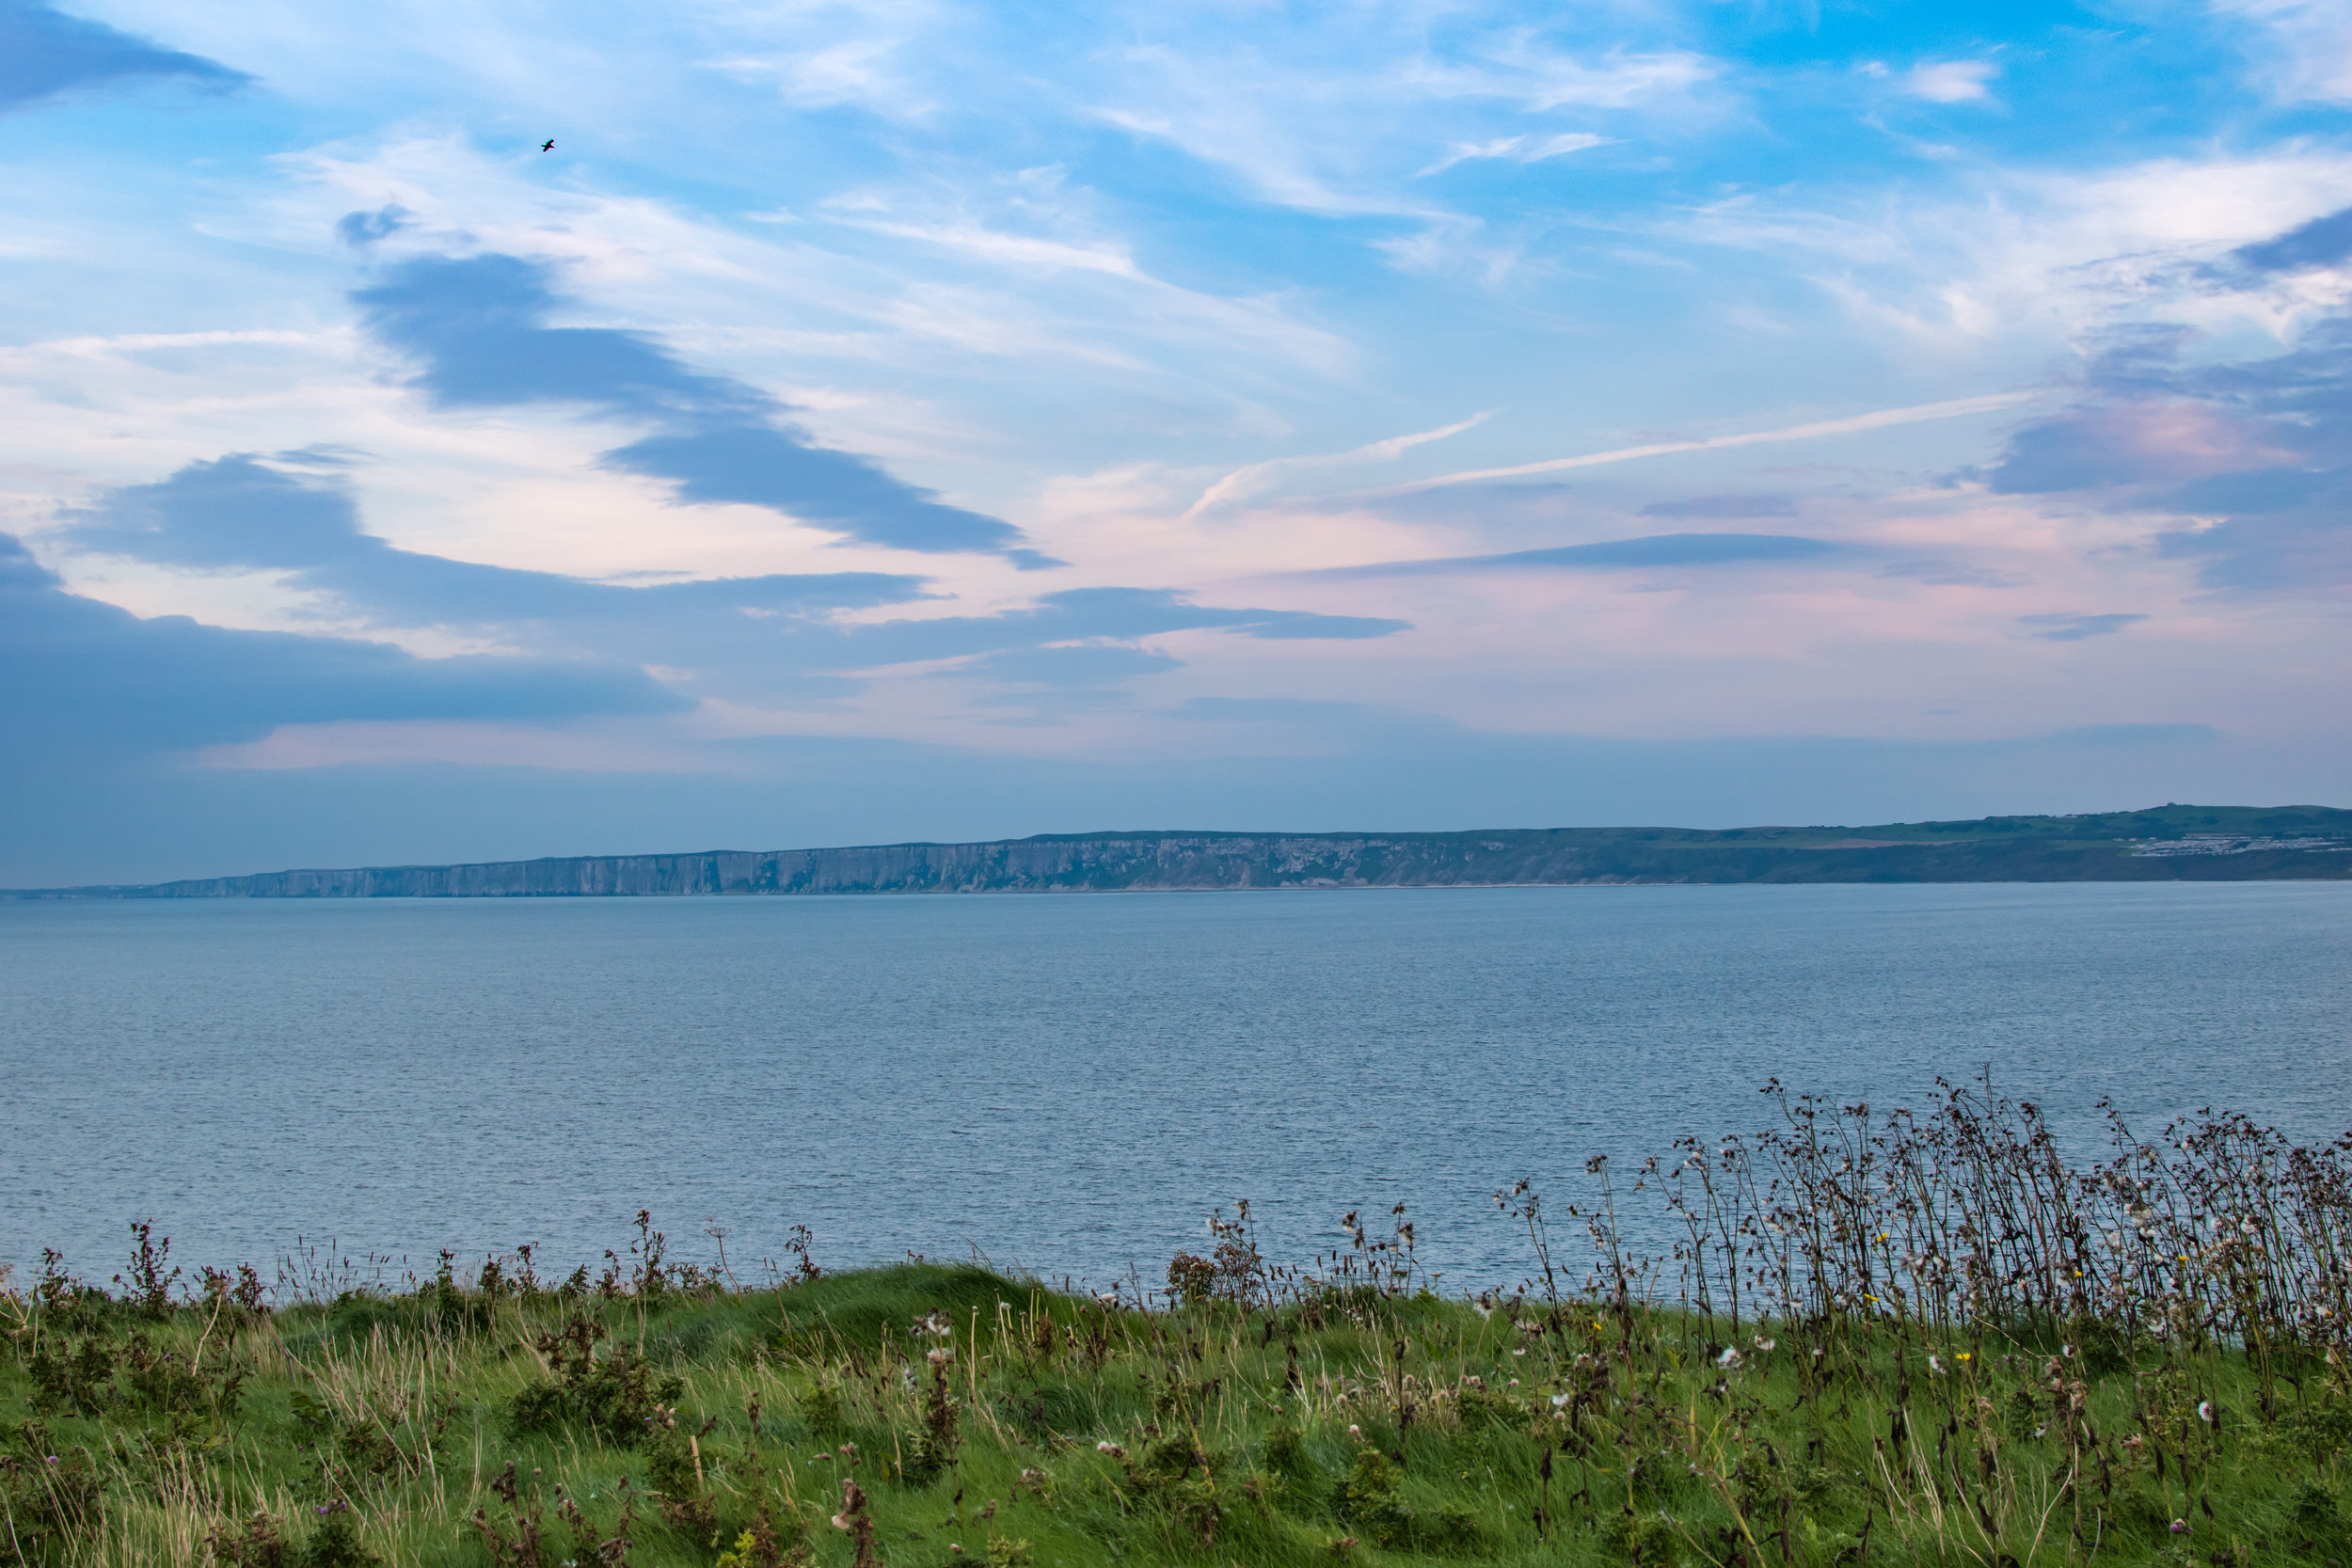 OFF THE COAST OF FILEY